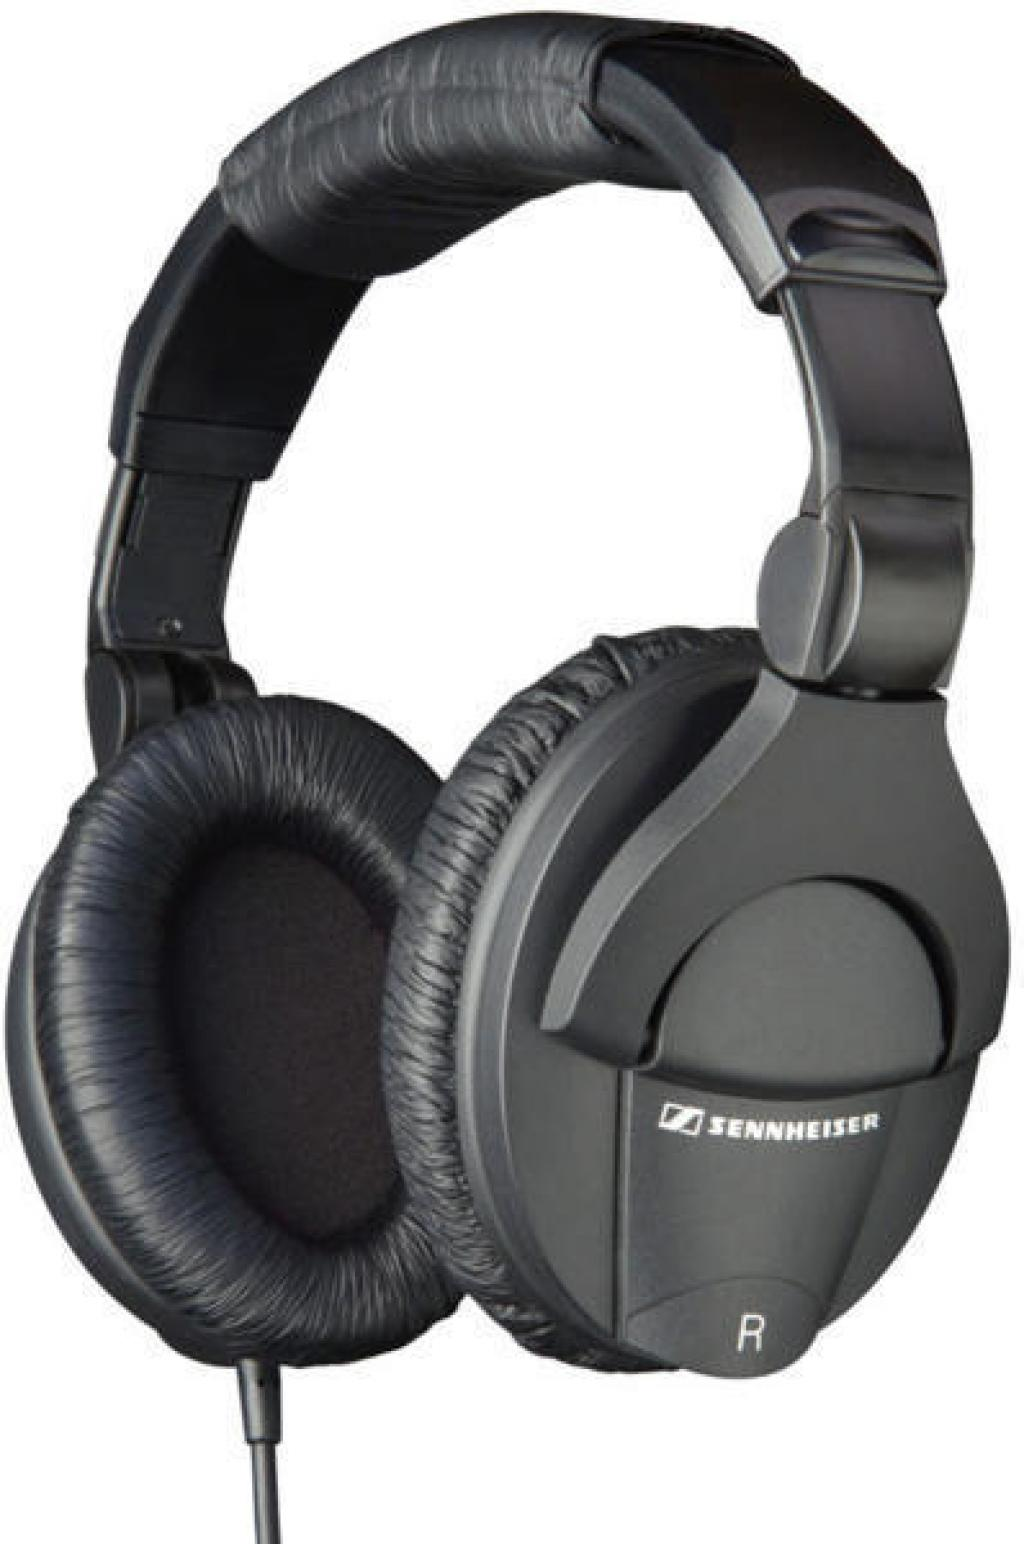 Casti Sennheiser HD 280 Pro New Facelift